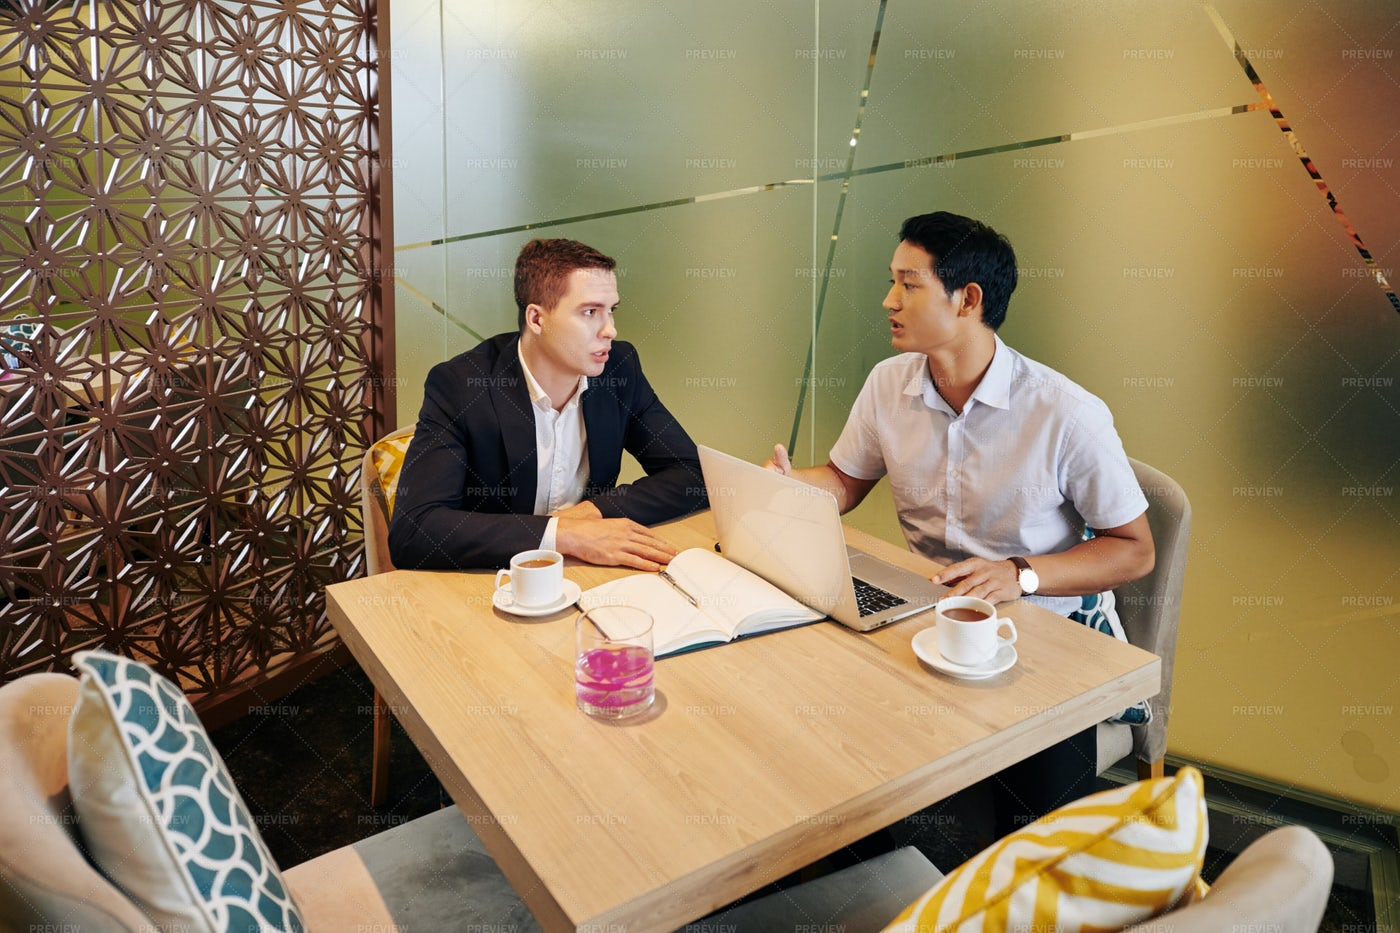 Business Executives In Meeting Room: Stock Photos